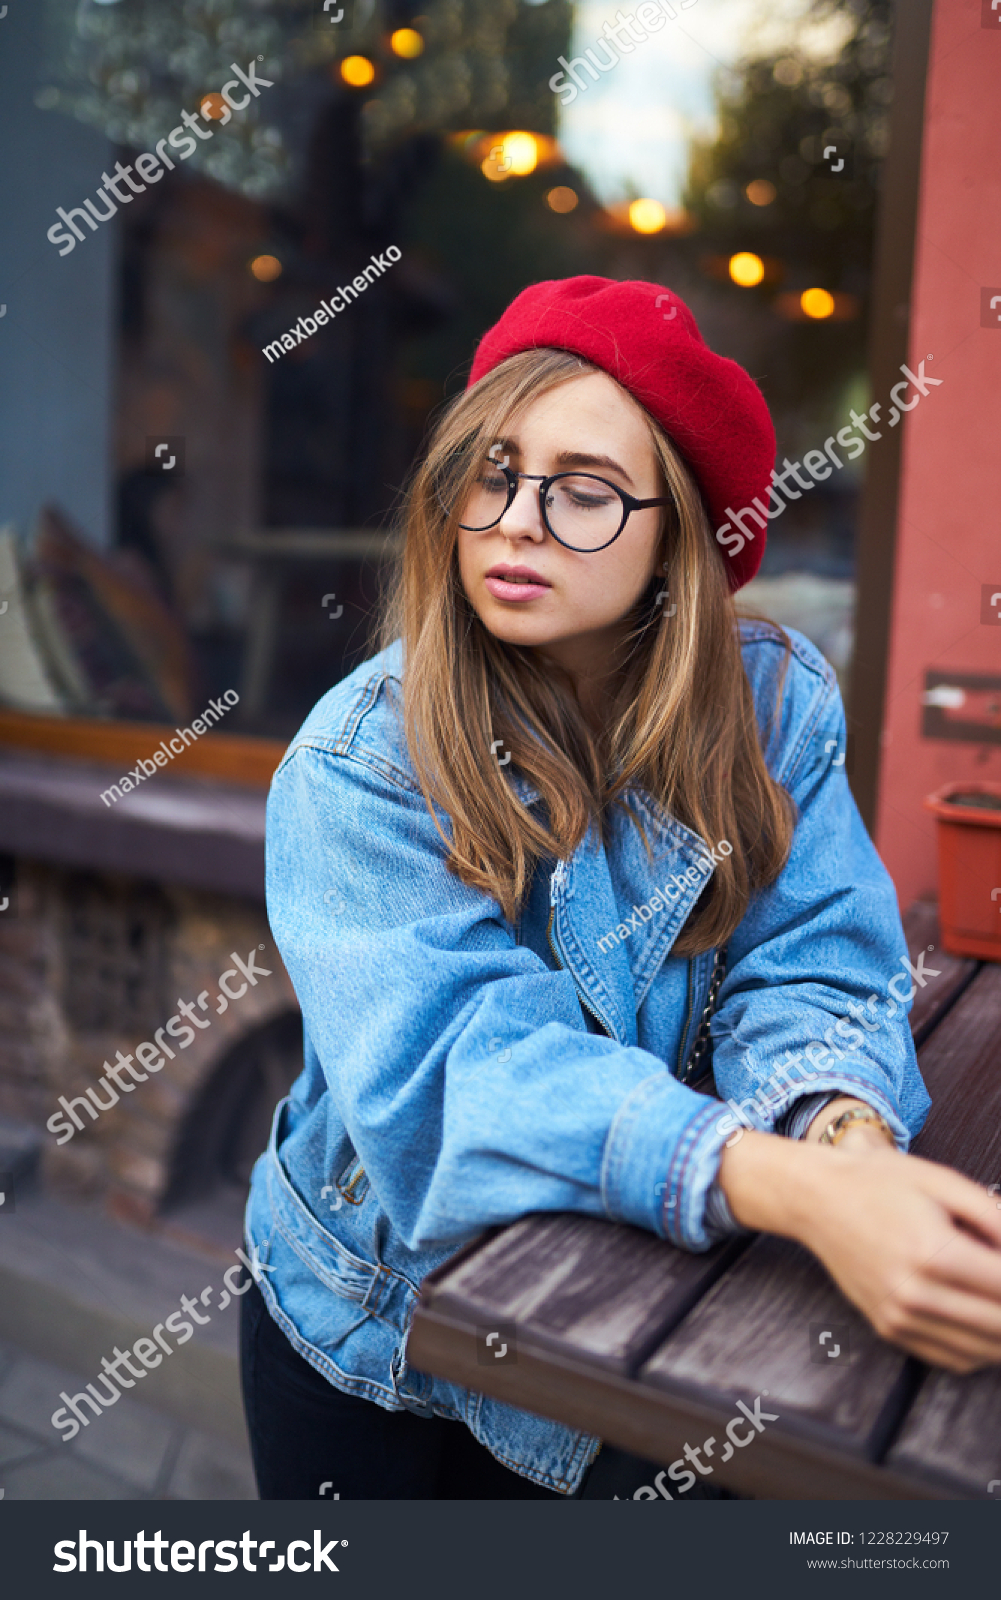 c90df2cc843 Summer sunny lifestyle fashion portrait of young stylish hipster woman  walking on street